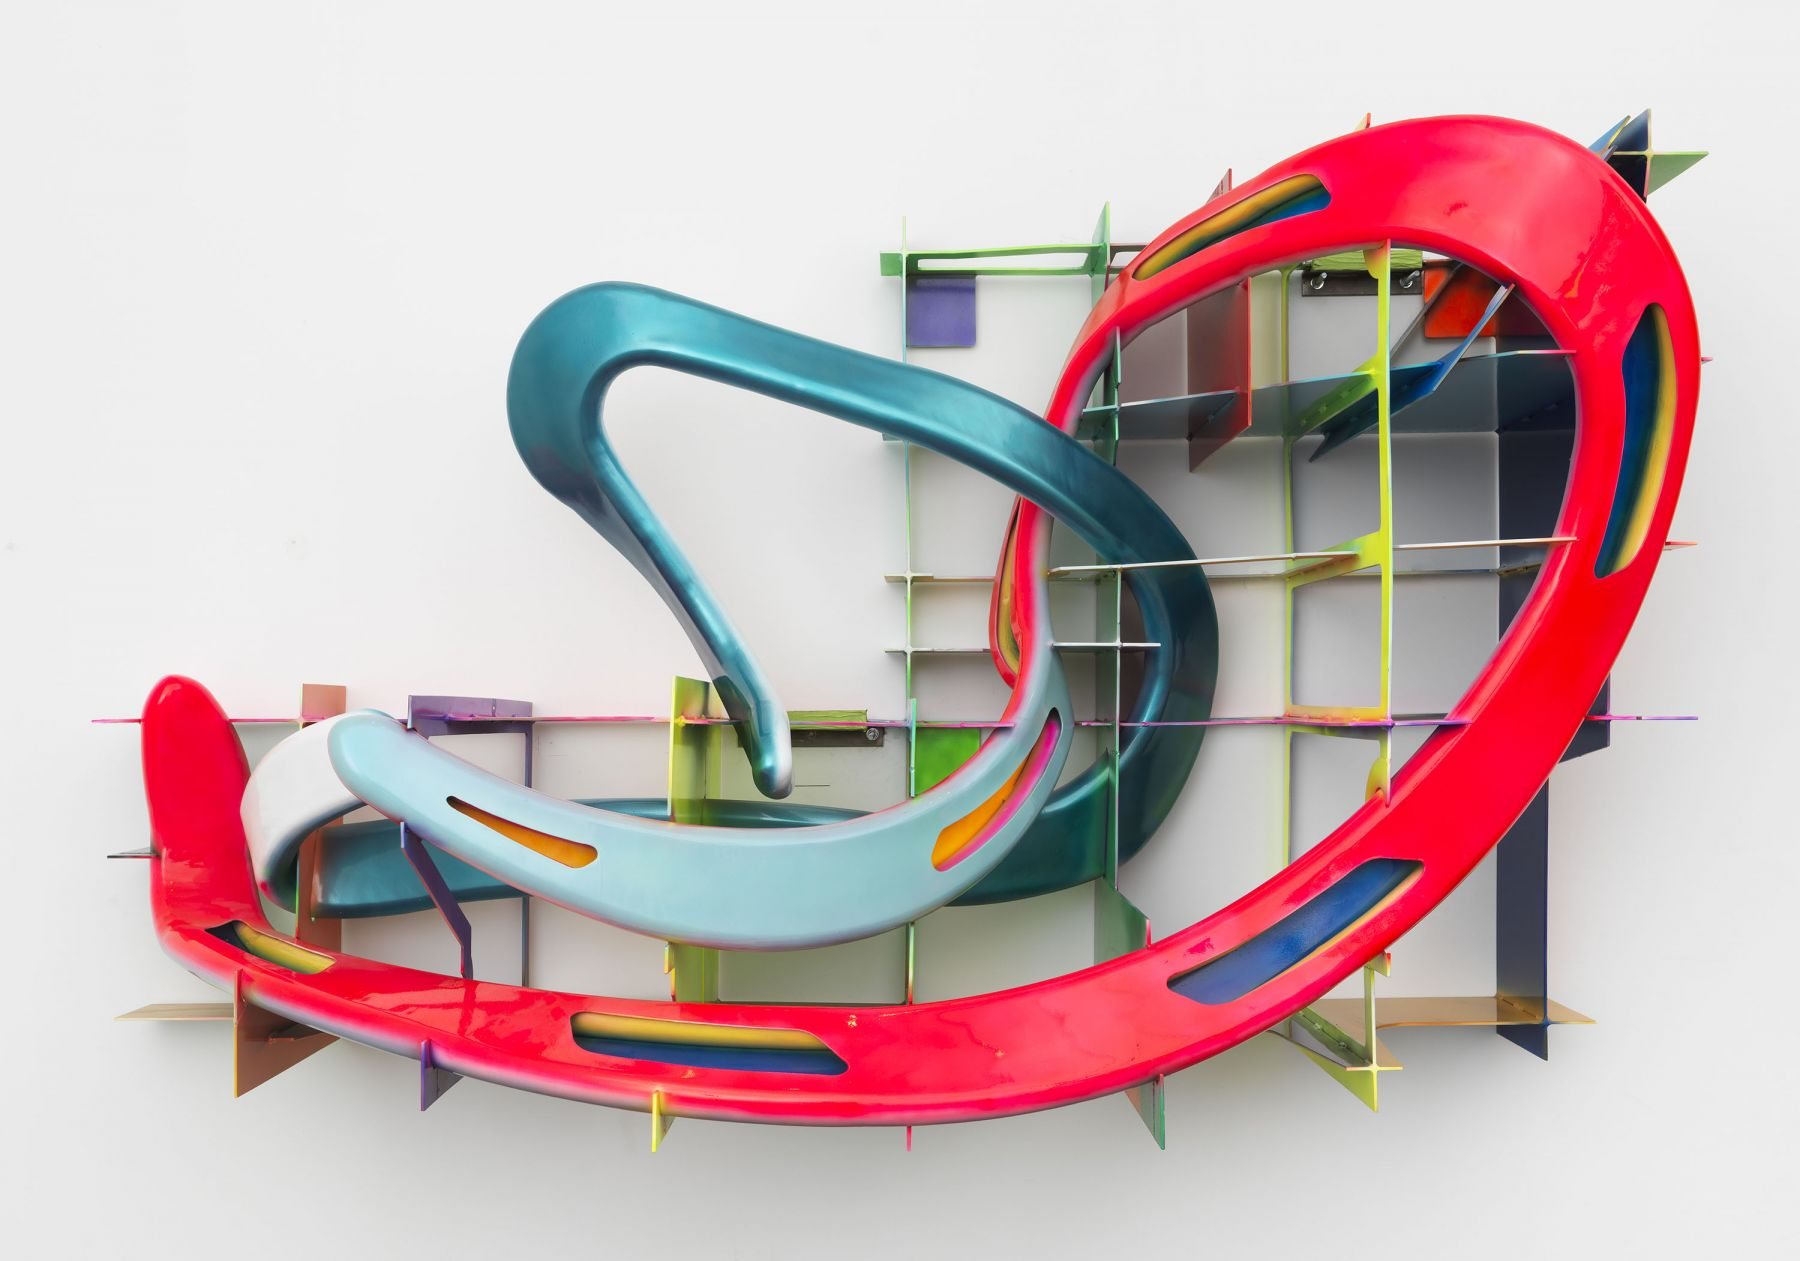 Leeuwarden II, a colorful neon sculpture of twisting lines by Frank Stella